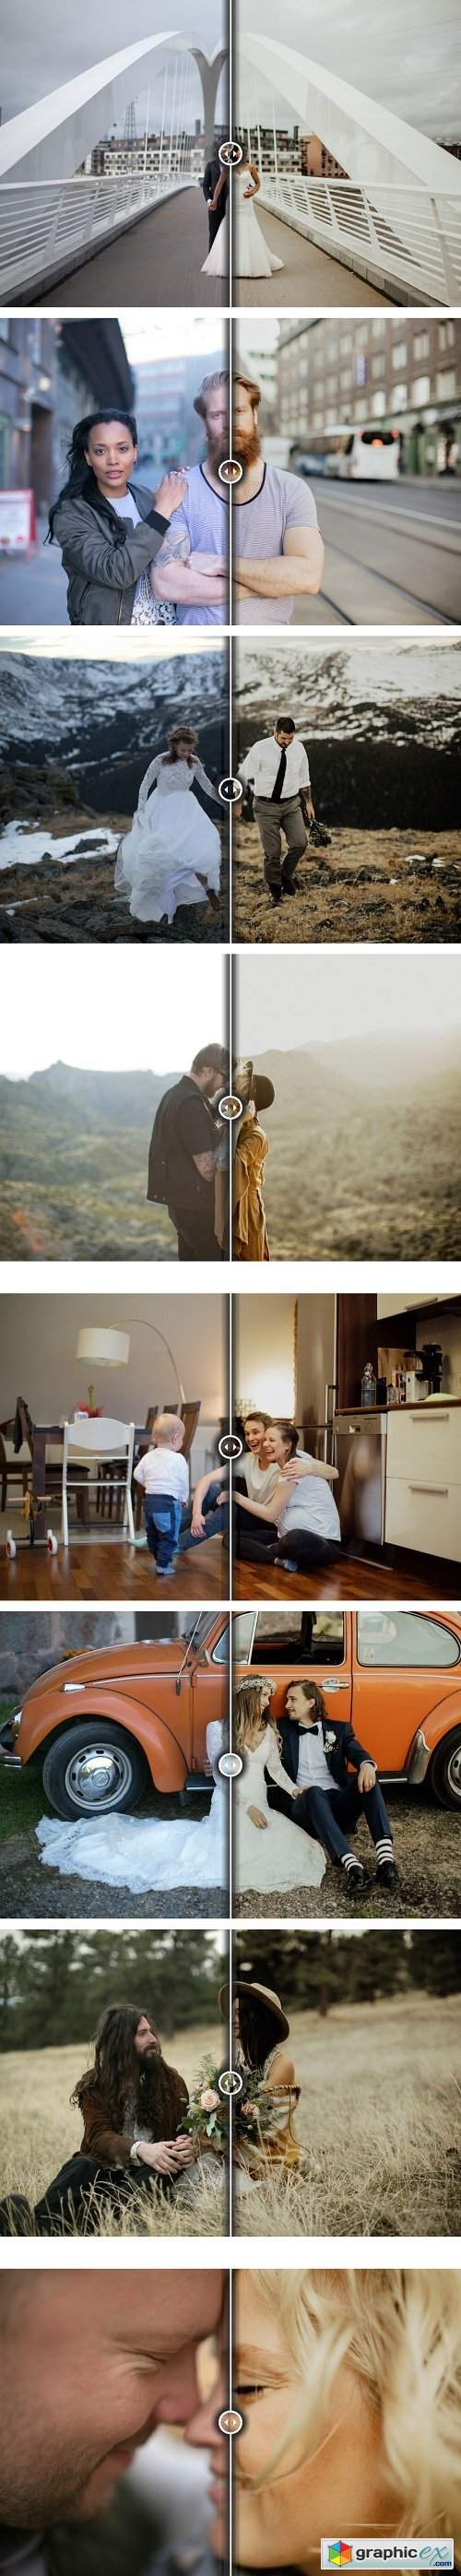 Wildhearts Lightroom & ACR Presets Pack